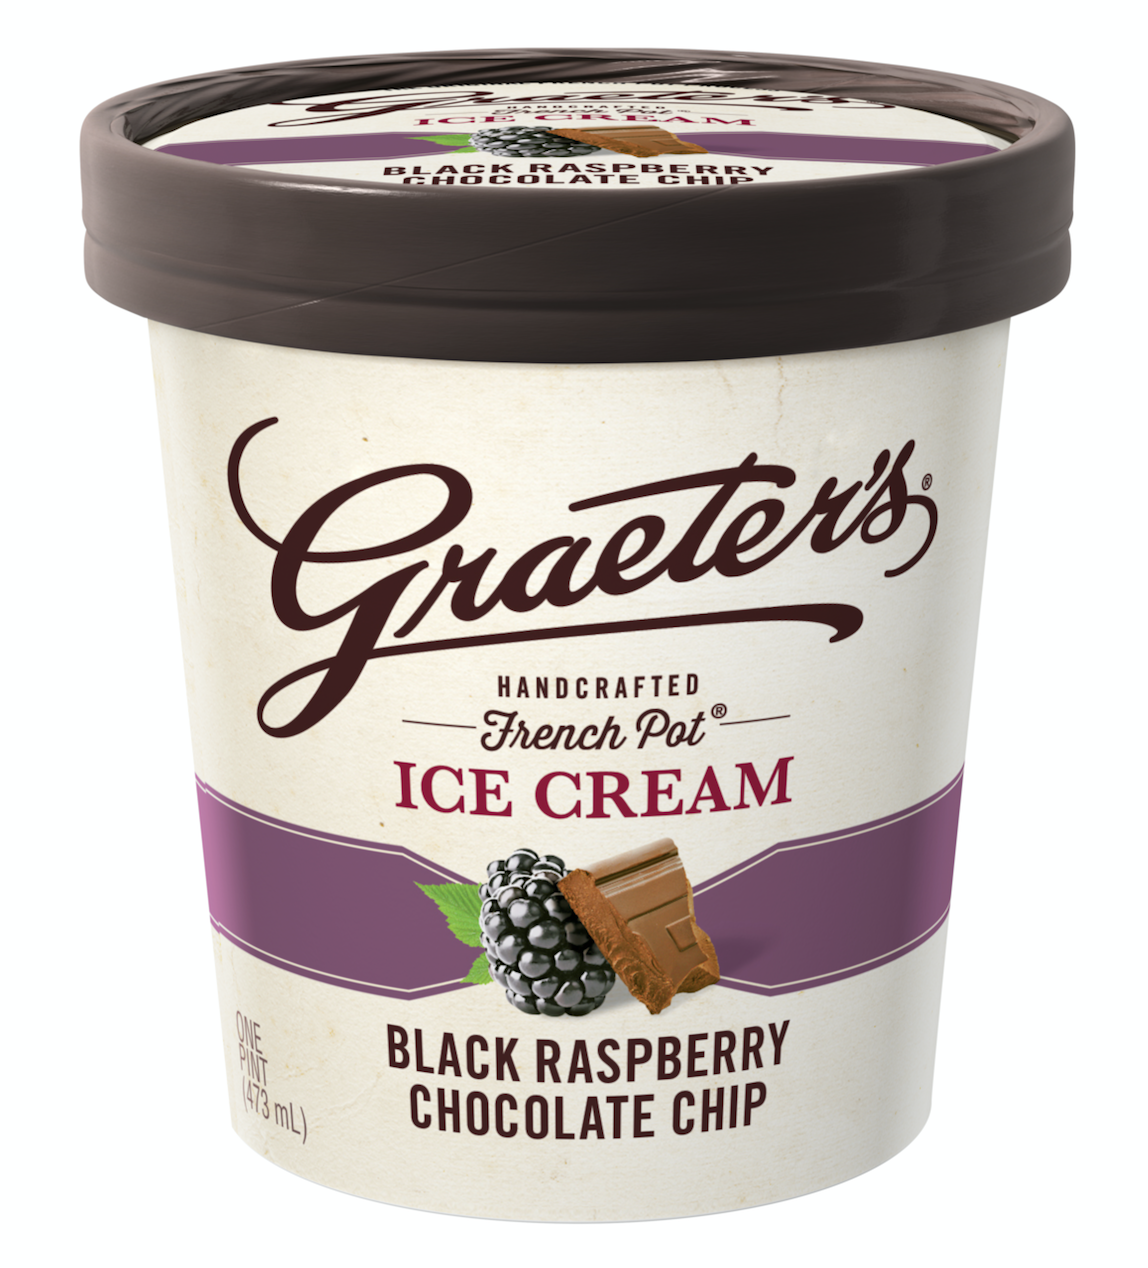 Graeter's Ice Cream Handcrafted French Pot Black Raspberry Chocolate Chip